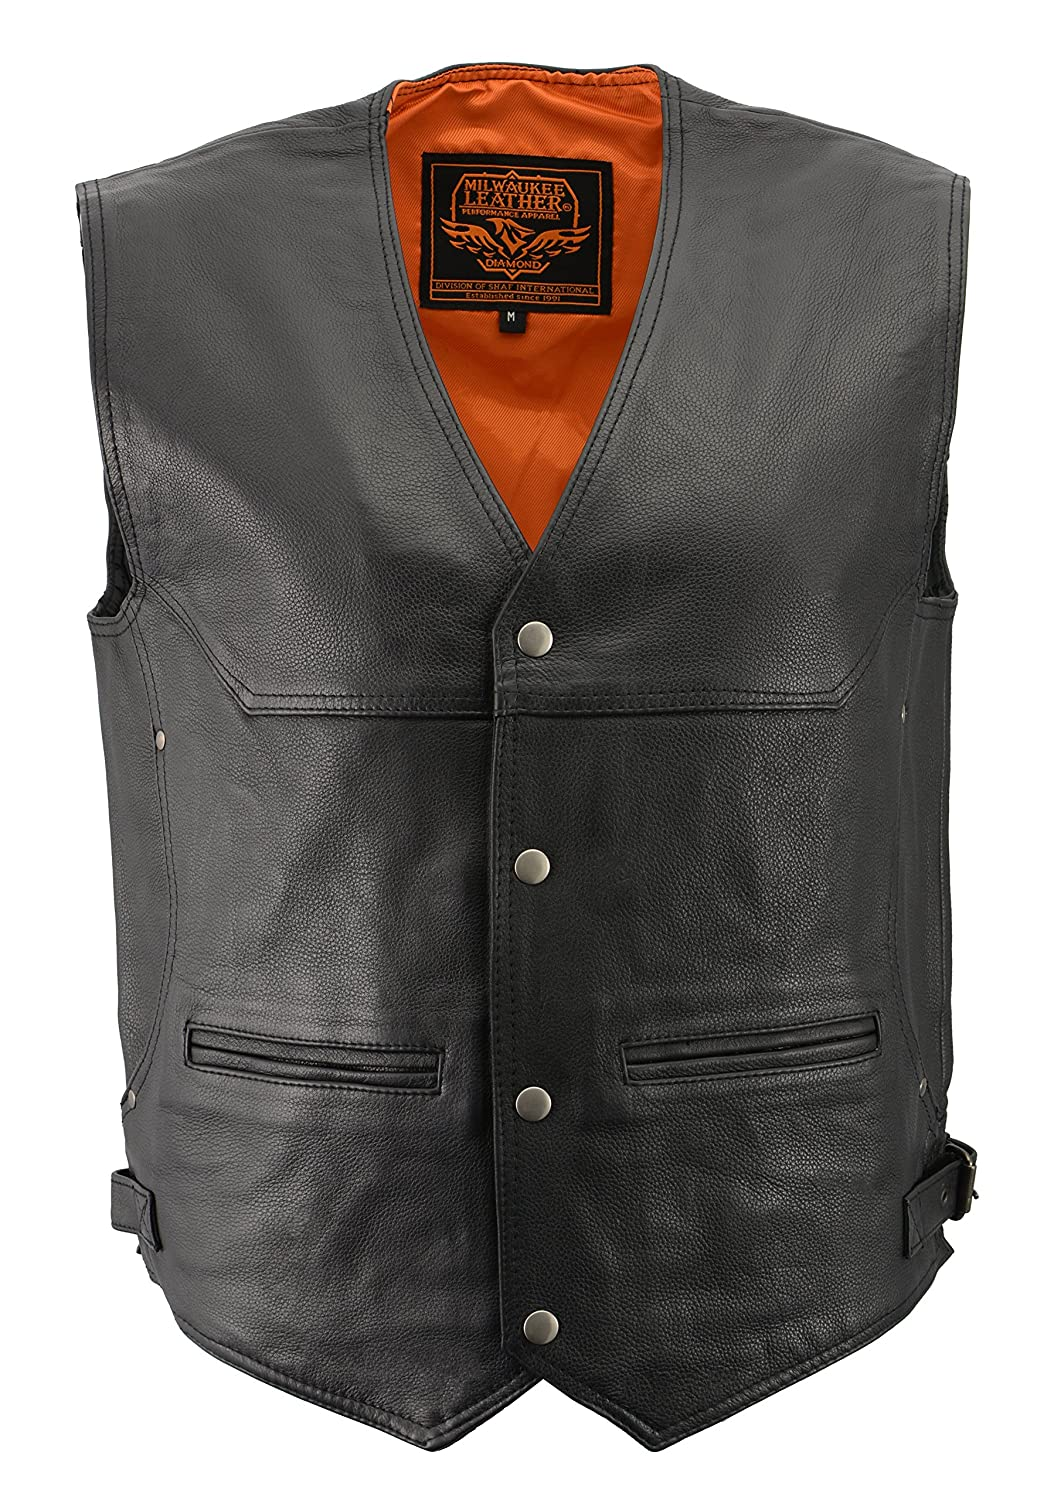 Milwaukee Men's Deep Pocket Leather Vest (Black, X-Large) Milwaukee Leather Milwaukee Men' s Deep Pocket Leather Vest (Black Shaf International Inc. ML1927-XL-BLACK